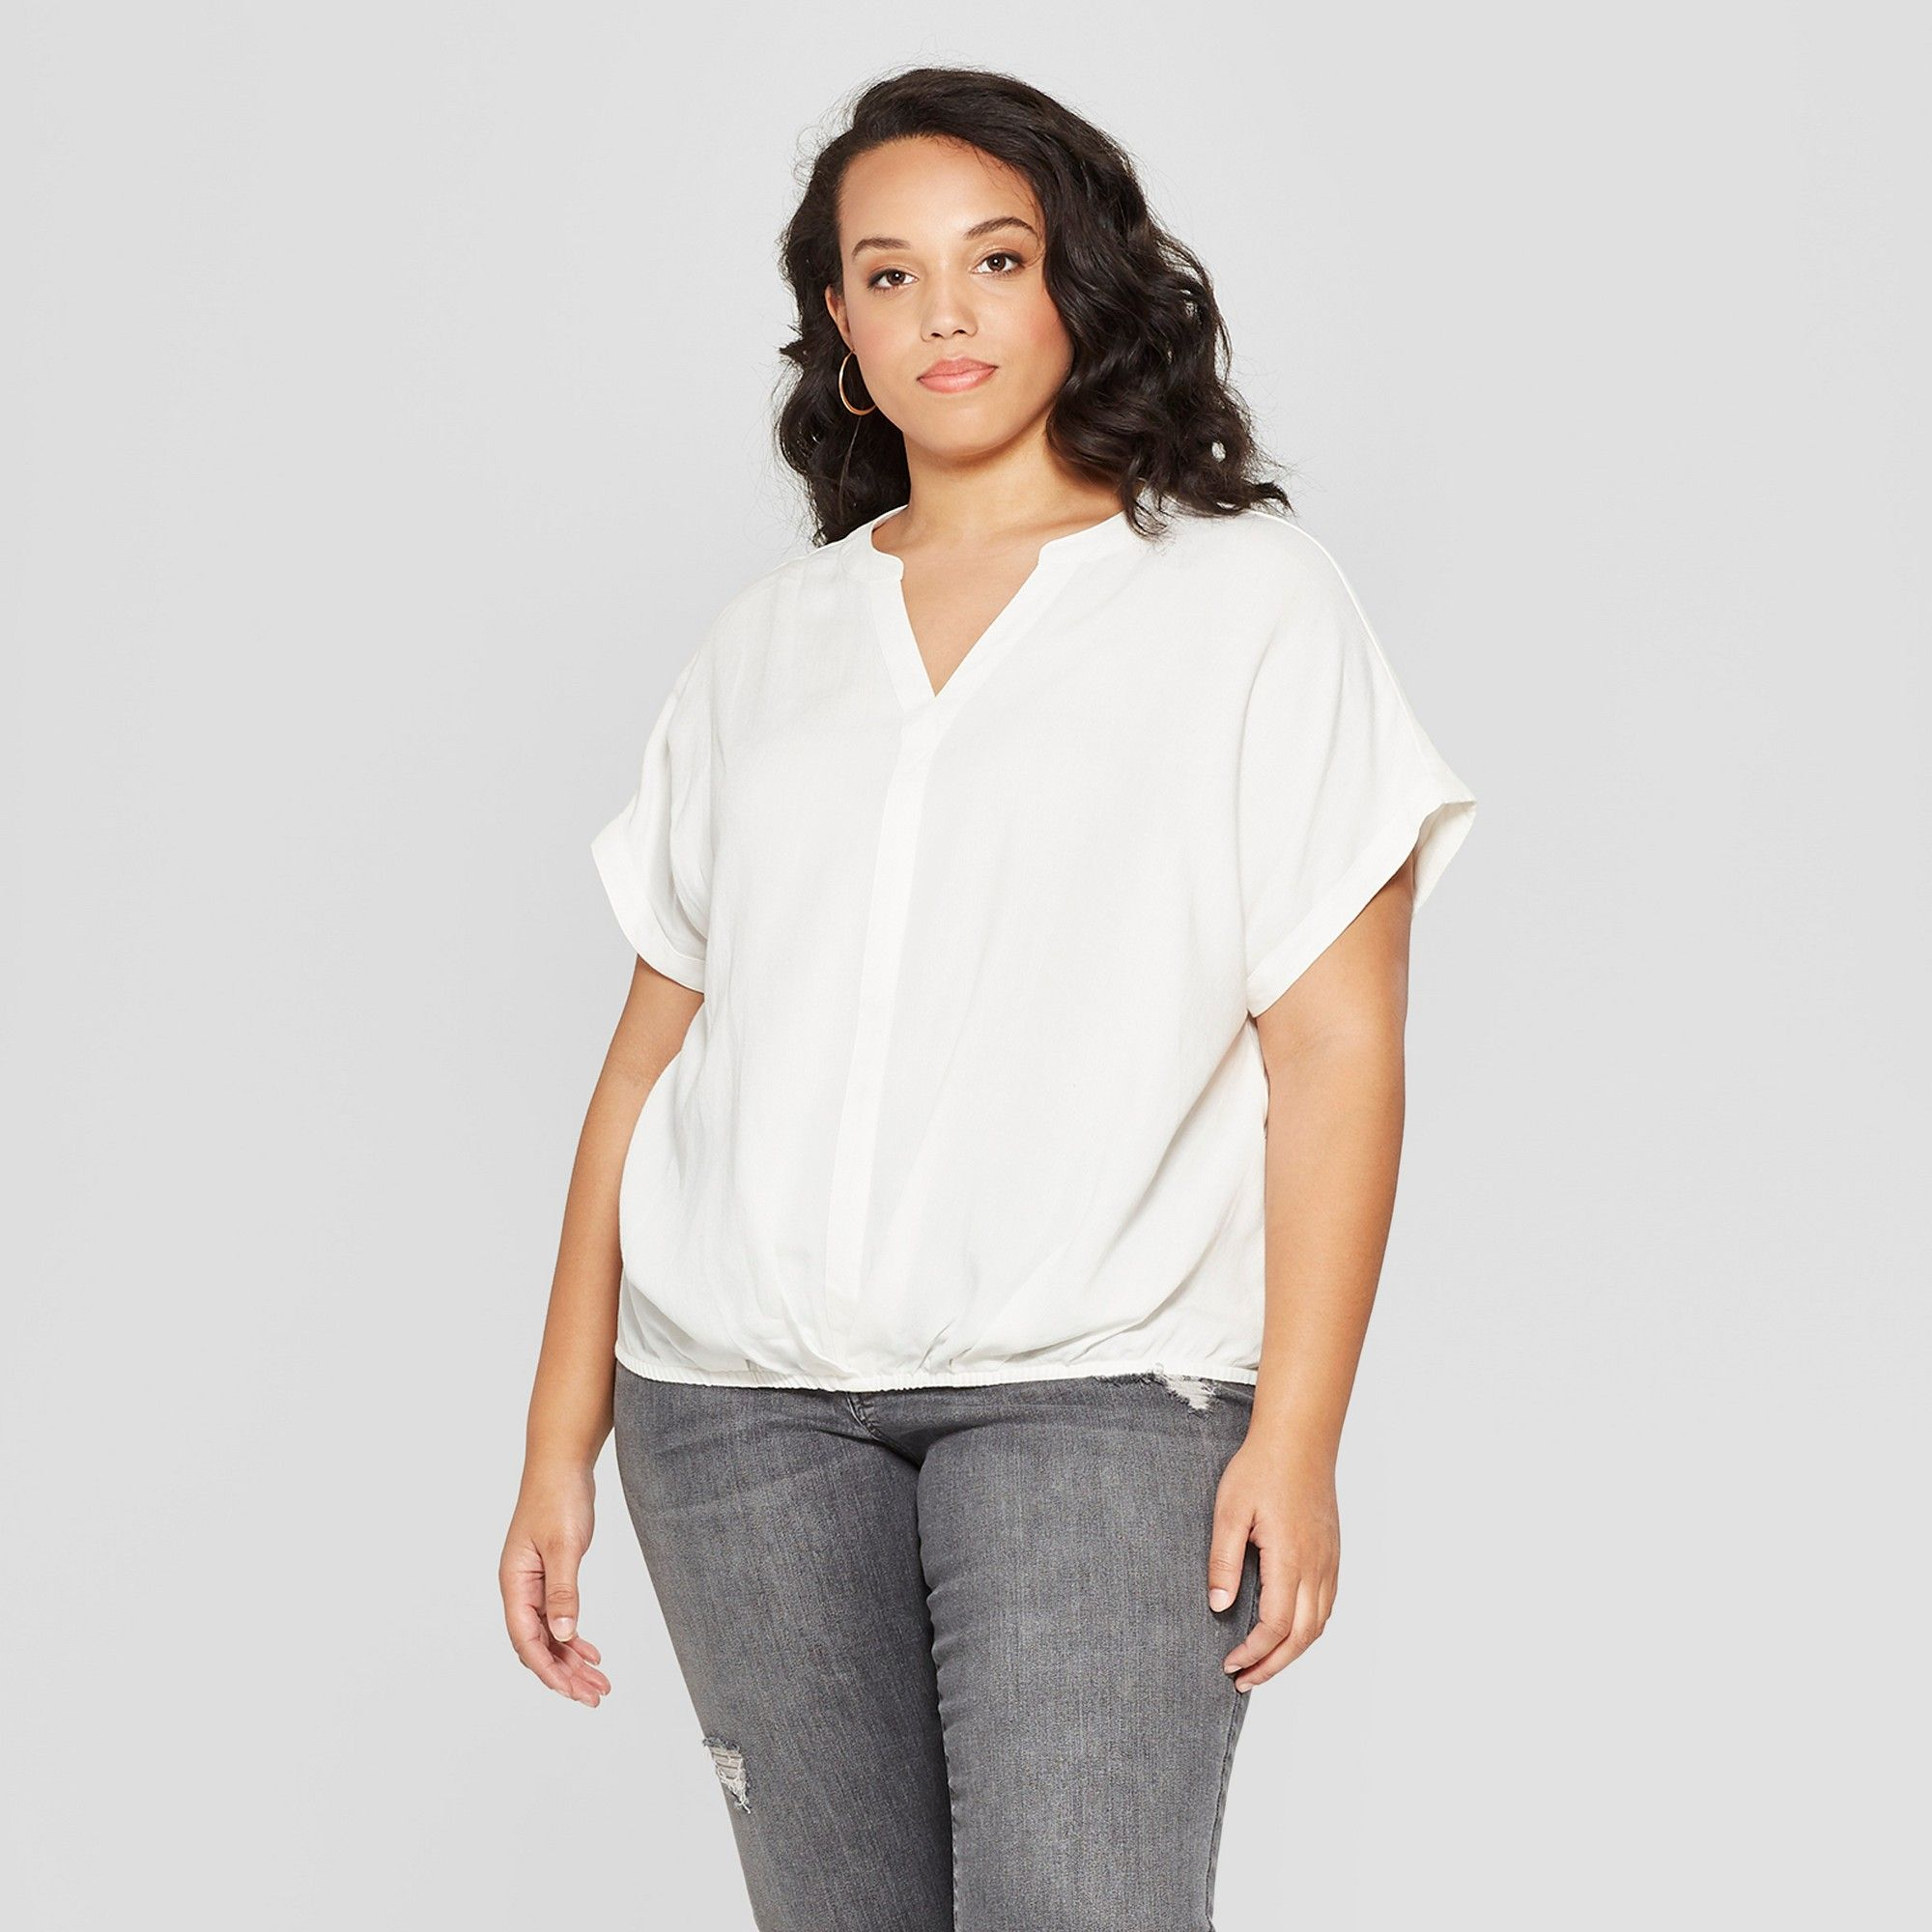 234b086b5f3a53 Women's Plus Size Short Sleeve Twist Front Top - Universal Thread White 1X